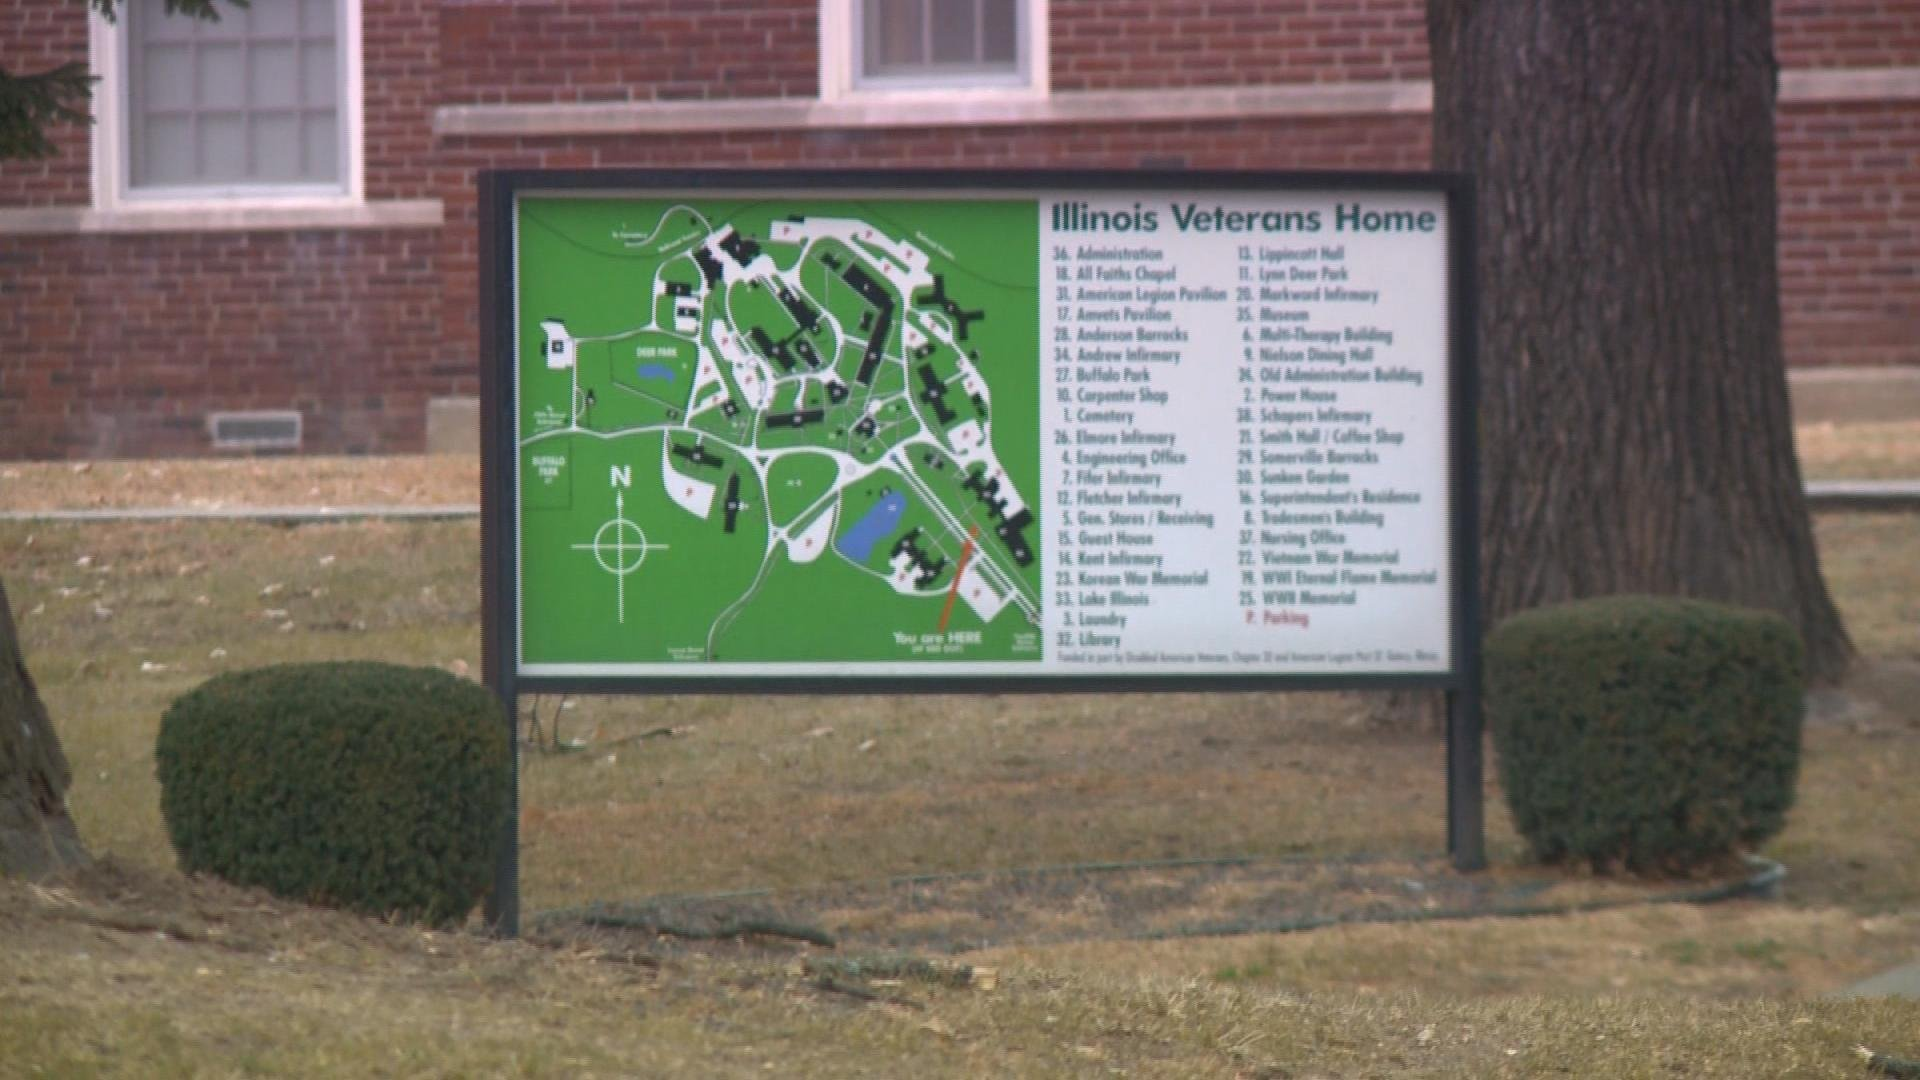 Rauner promises big changes at Quincy Vets home